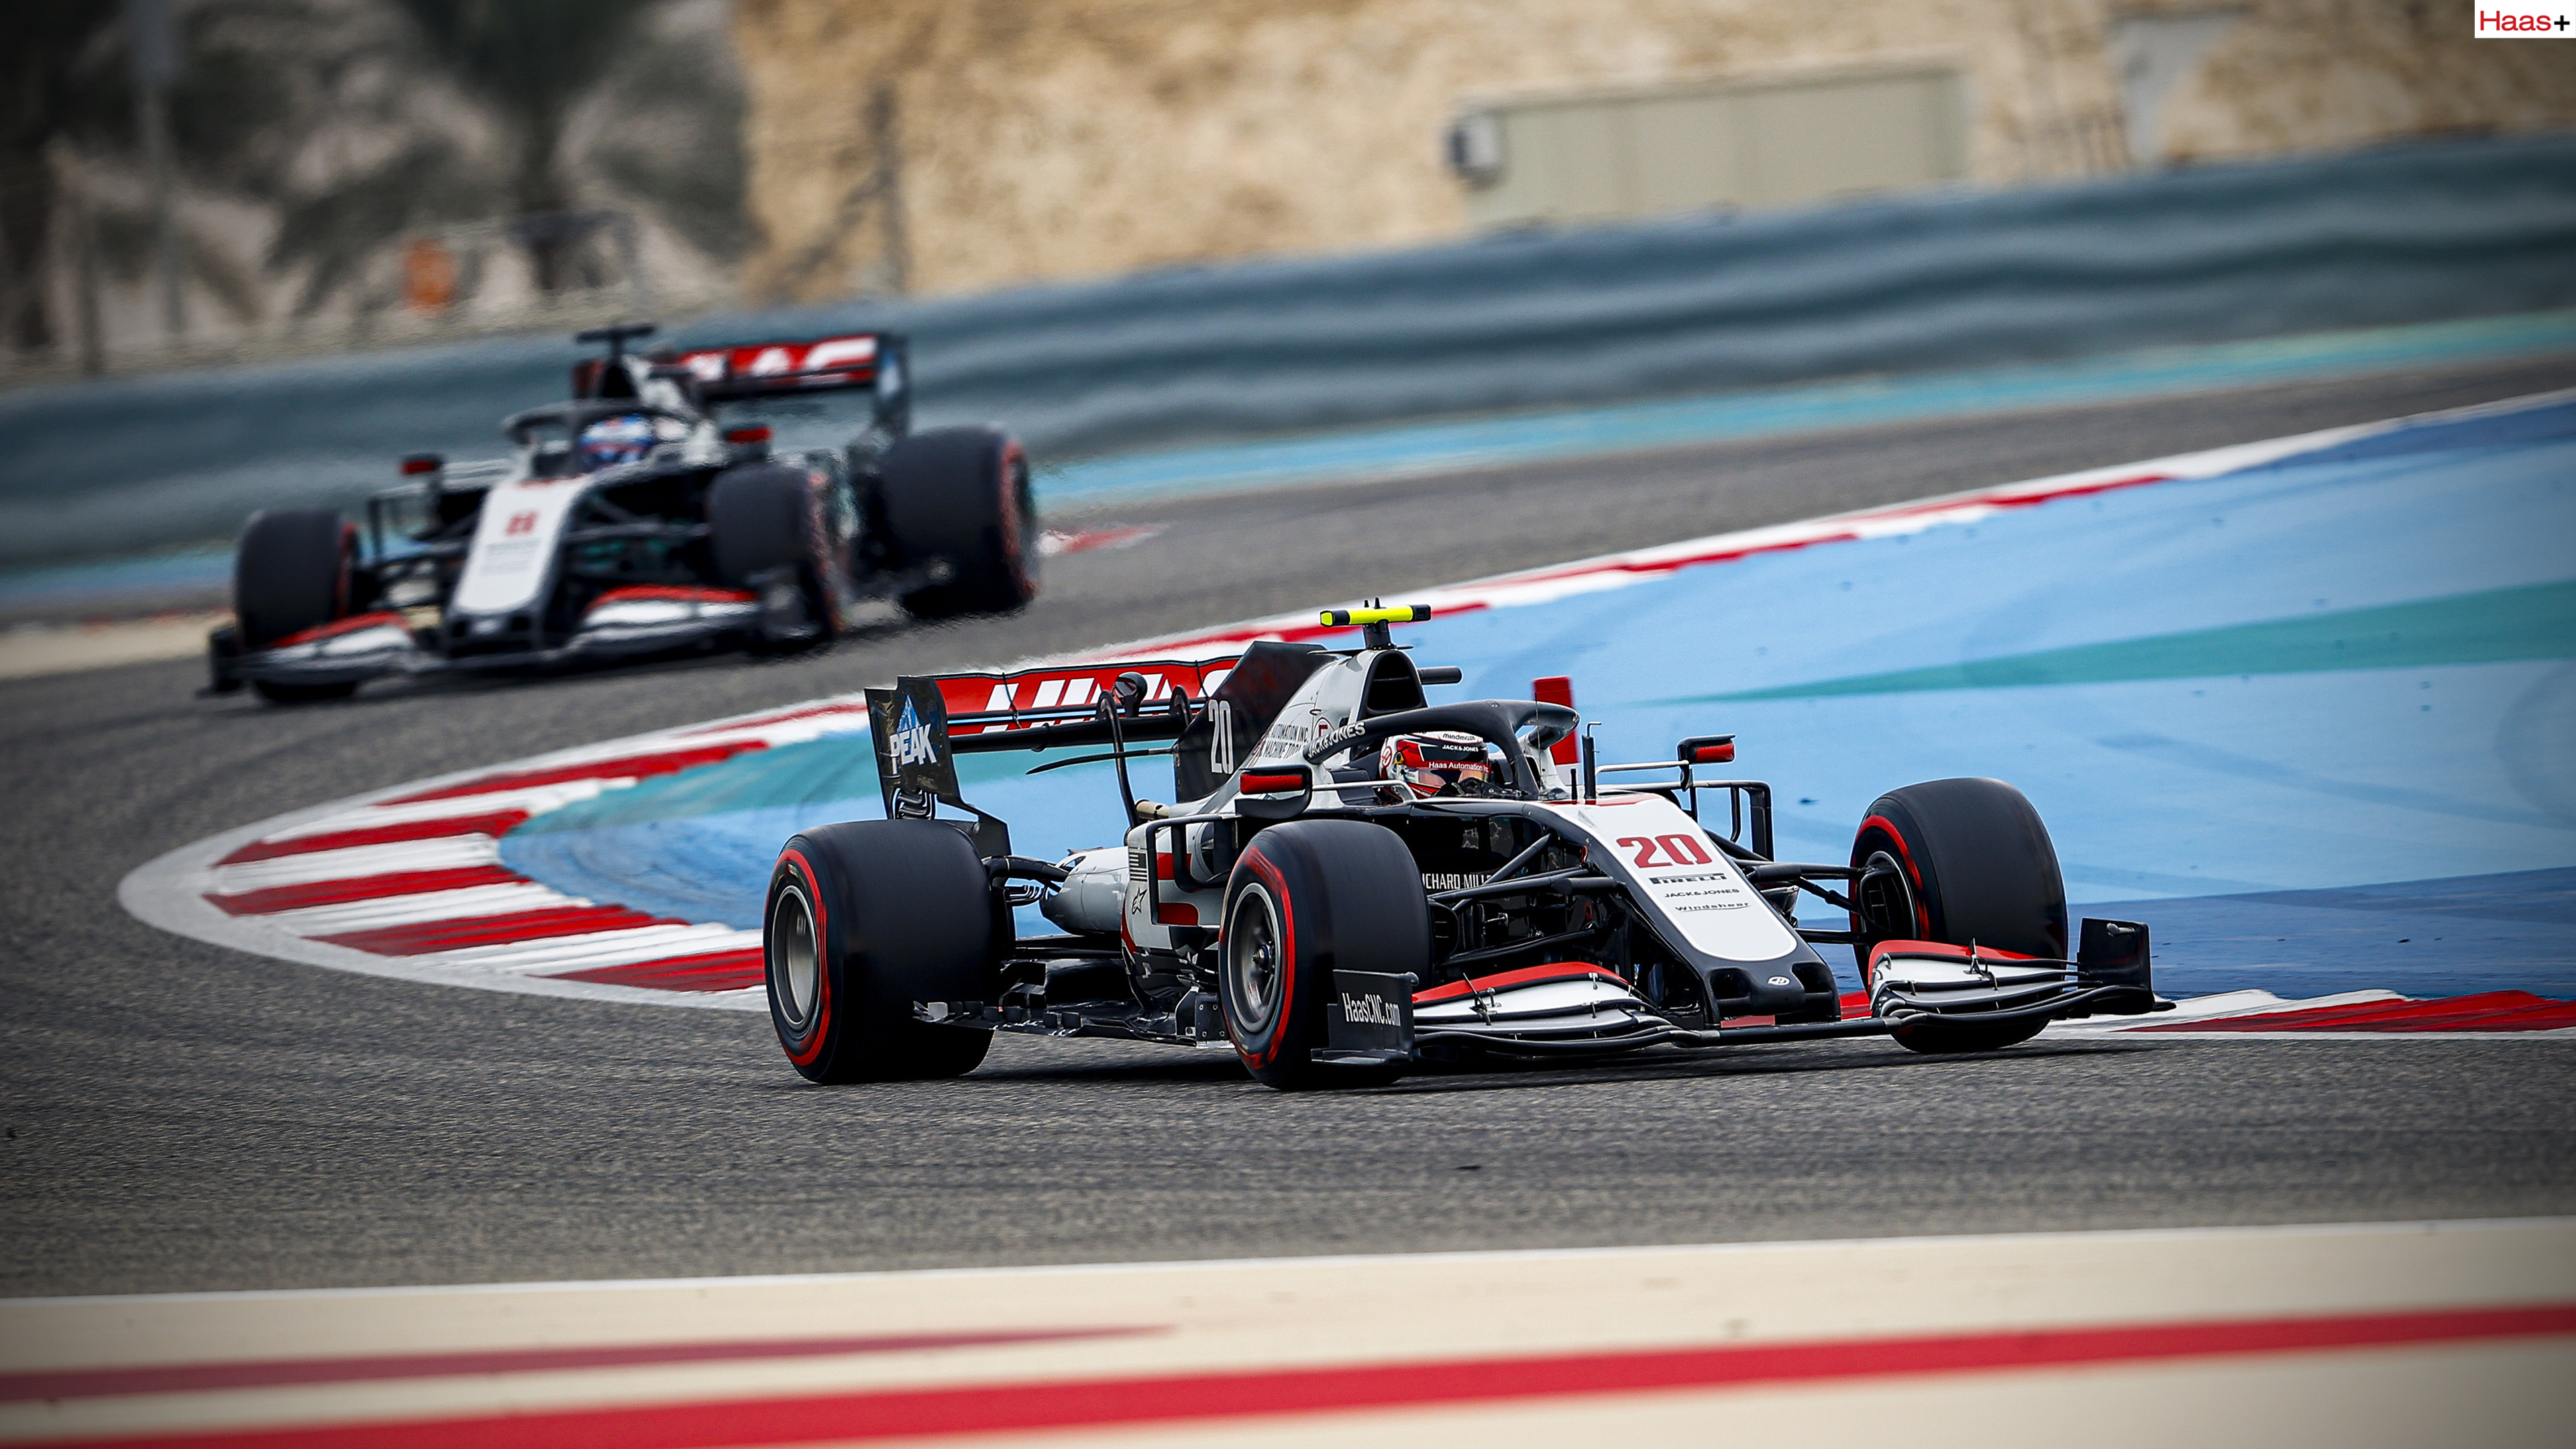 Analisi stagione 2020 Haas